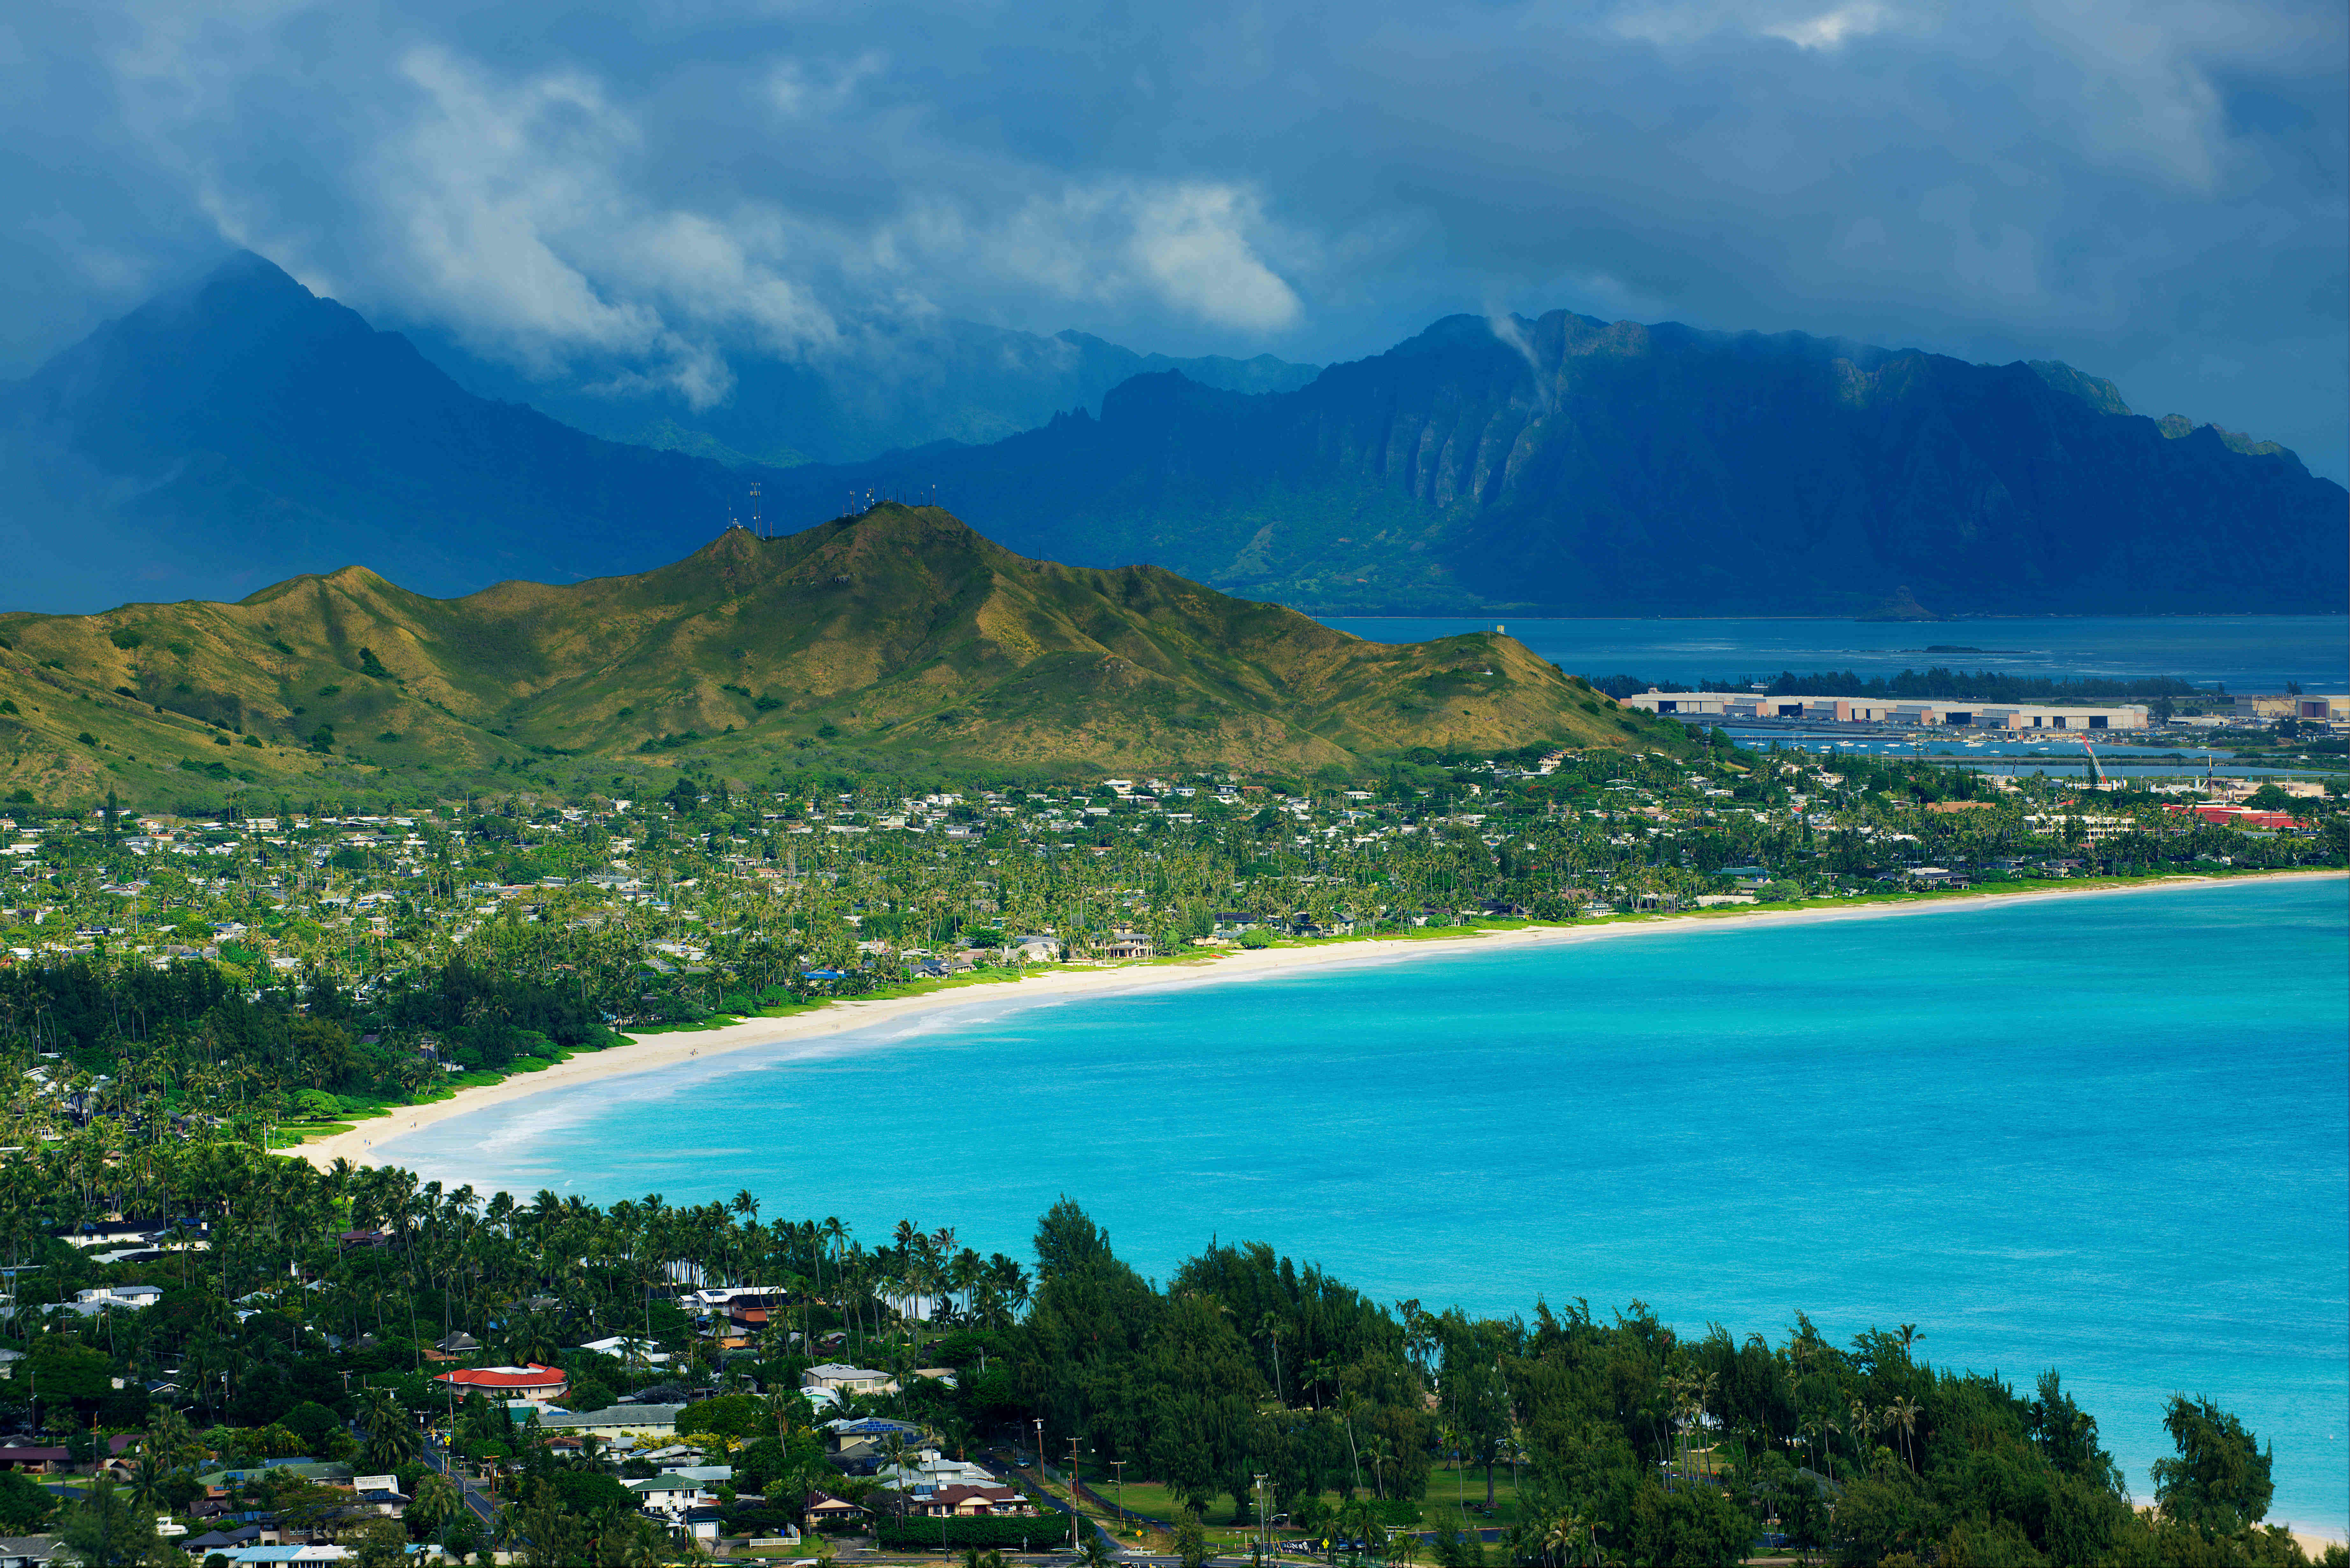 Hawaii tops the list for outdoor adventure this summer